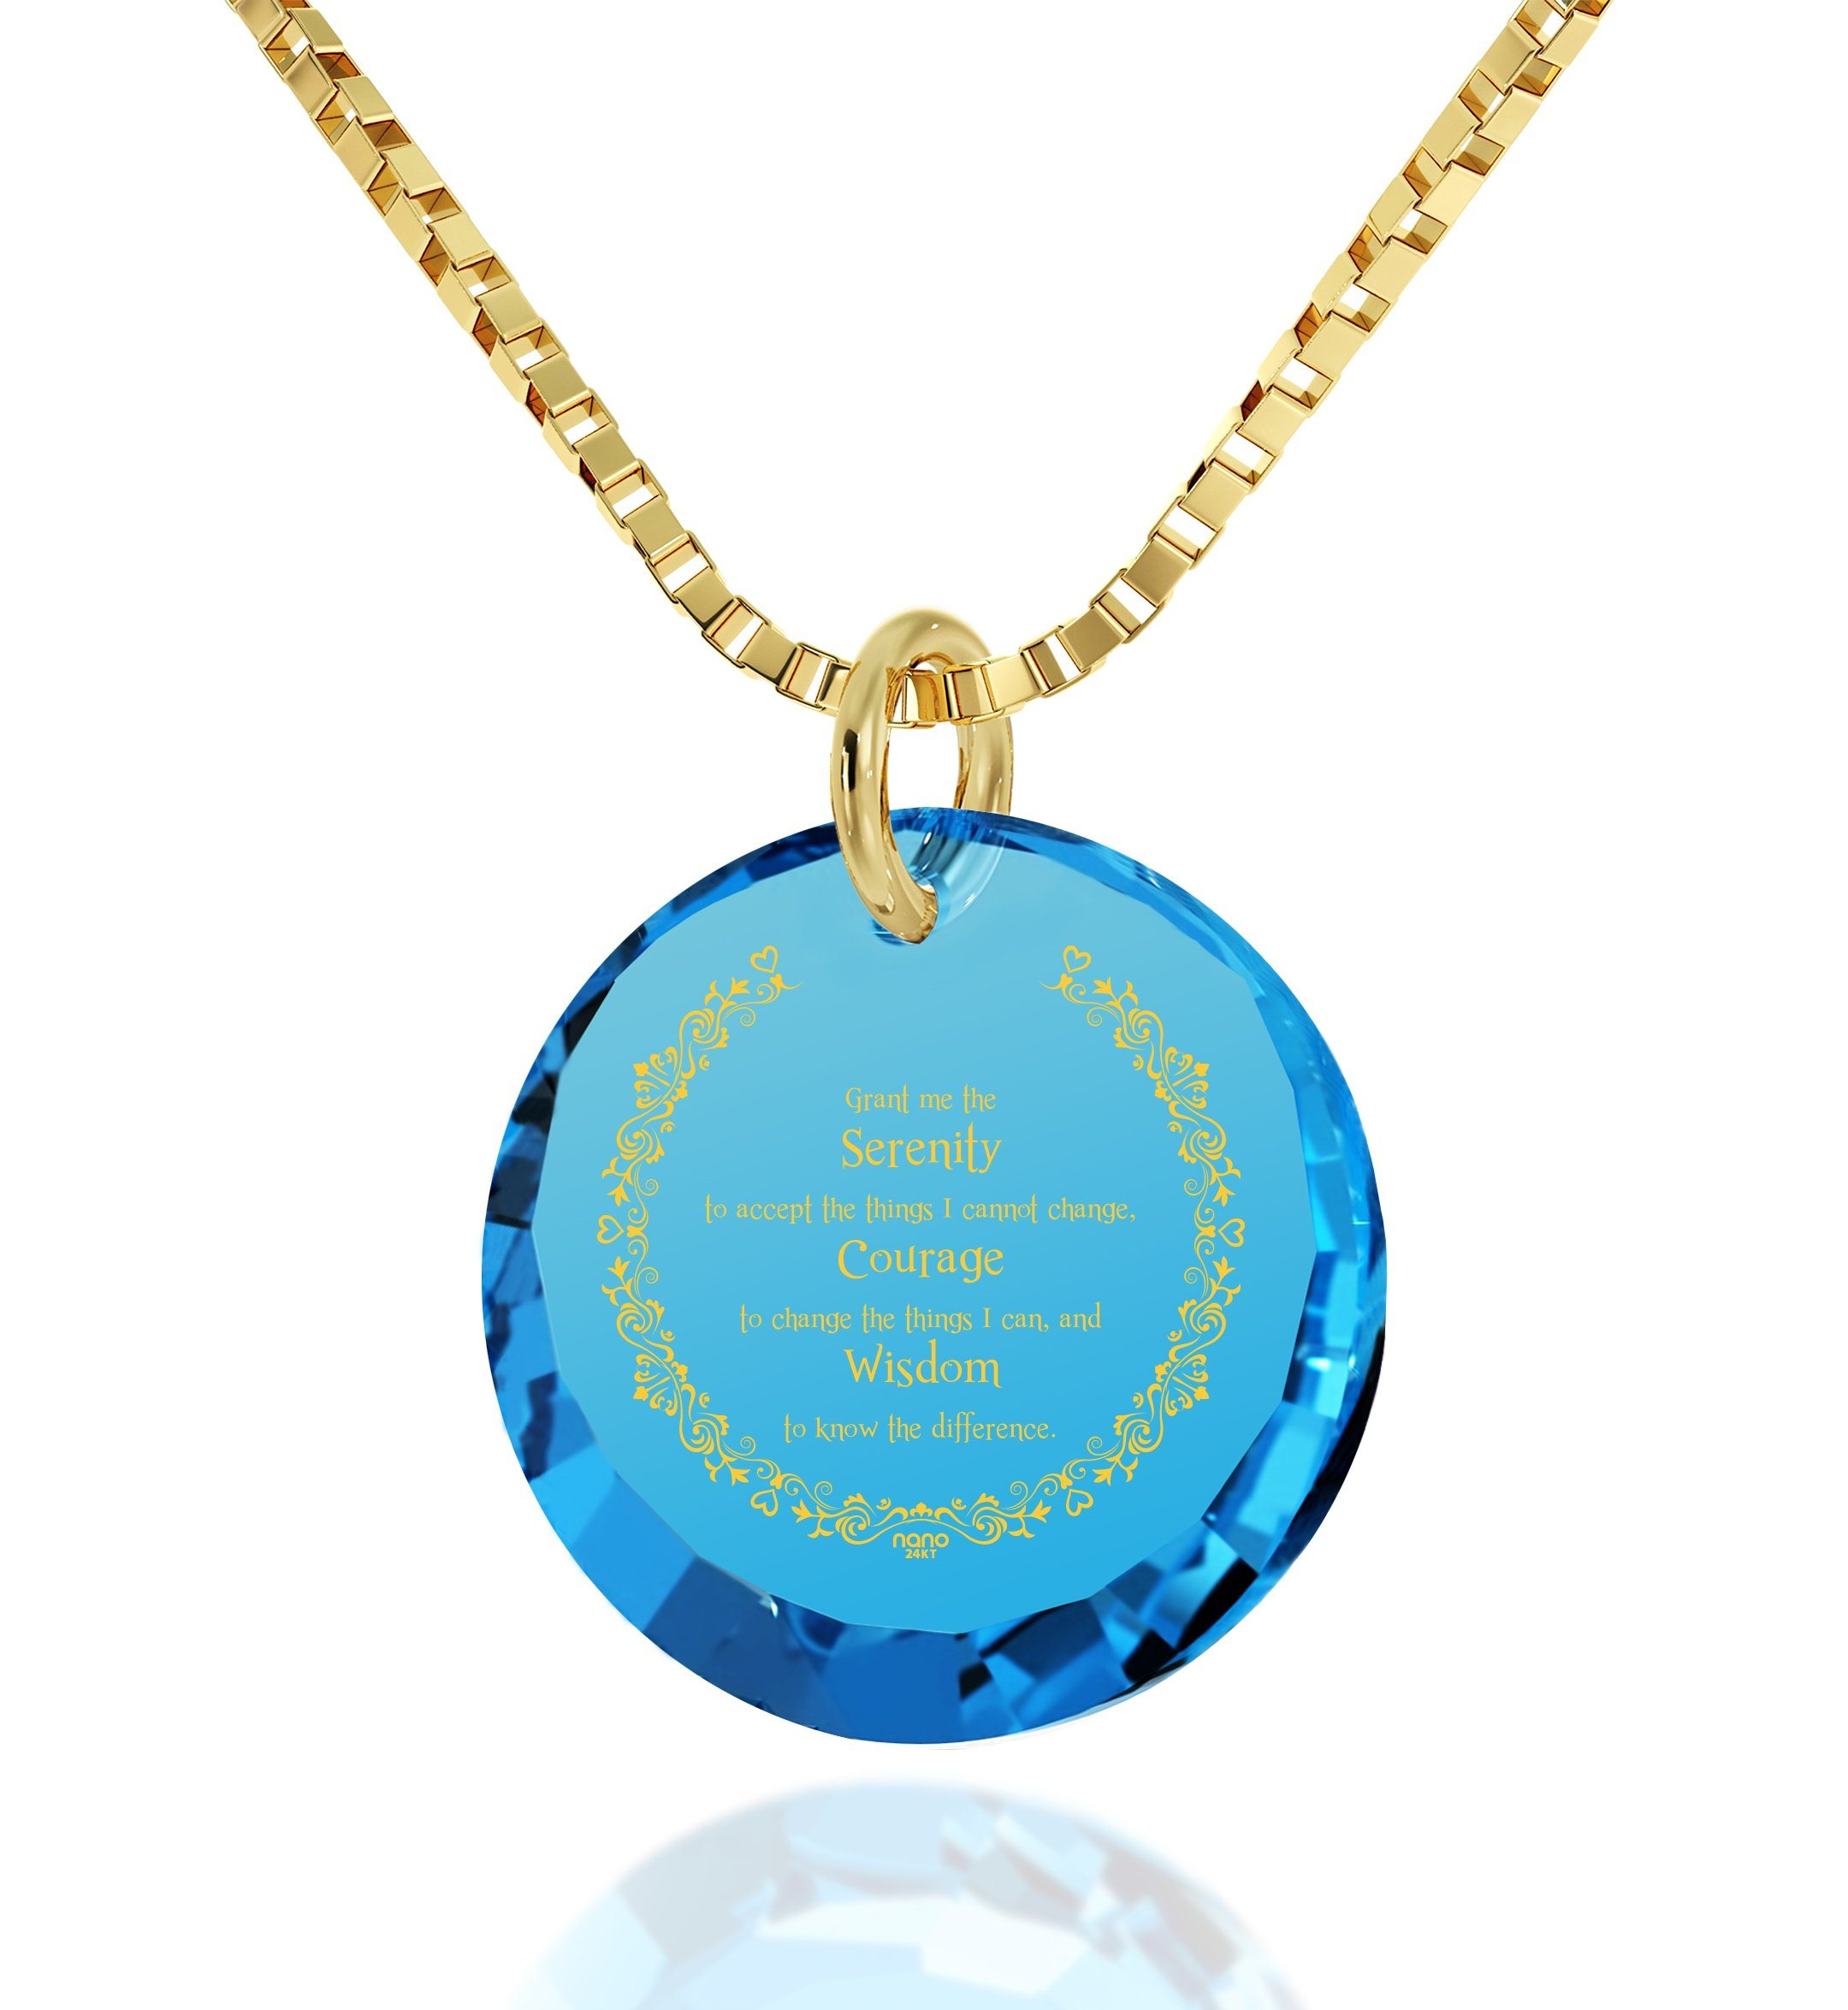 lulu designs prayer in me serenity necklace jewelry breakpoint